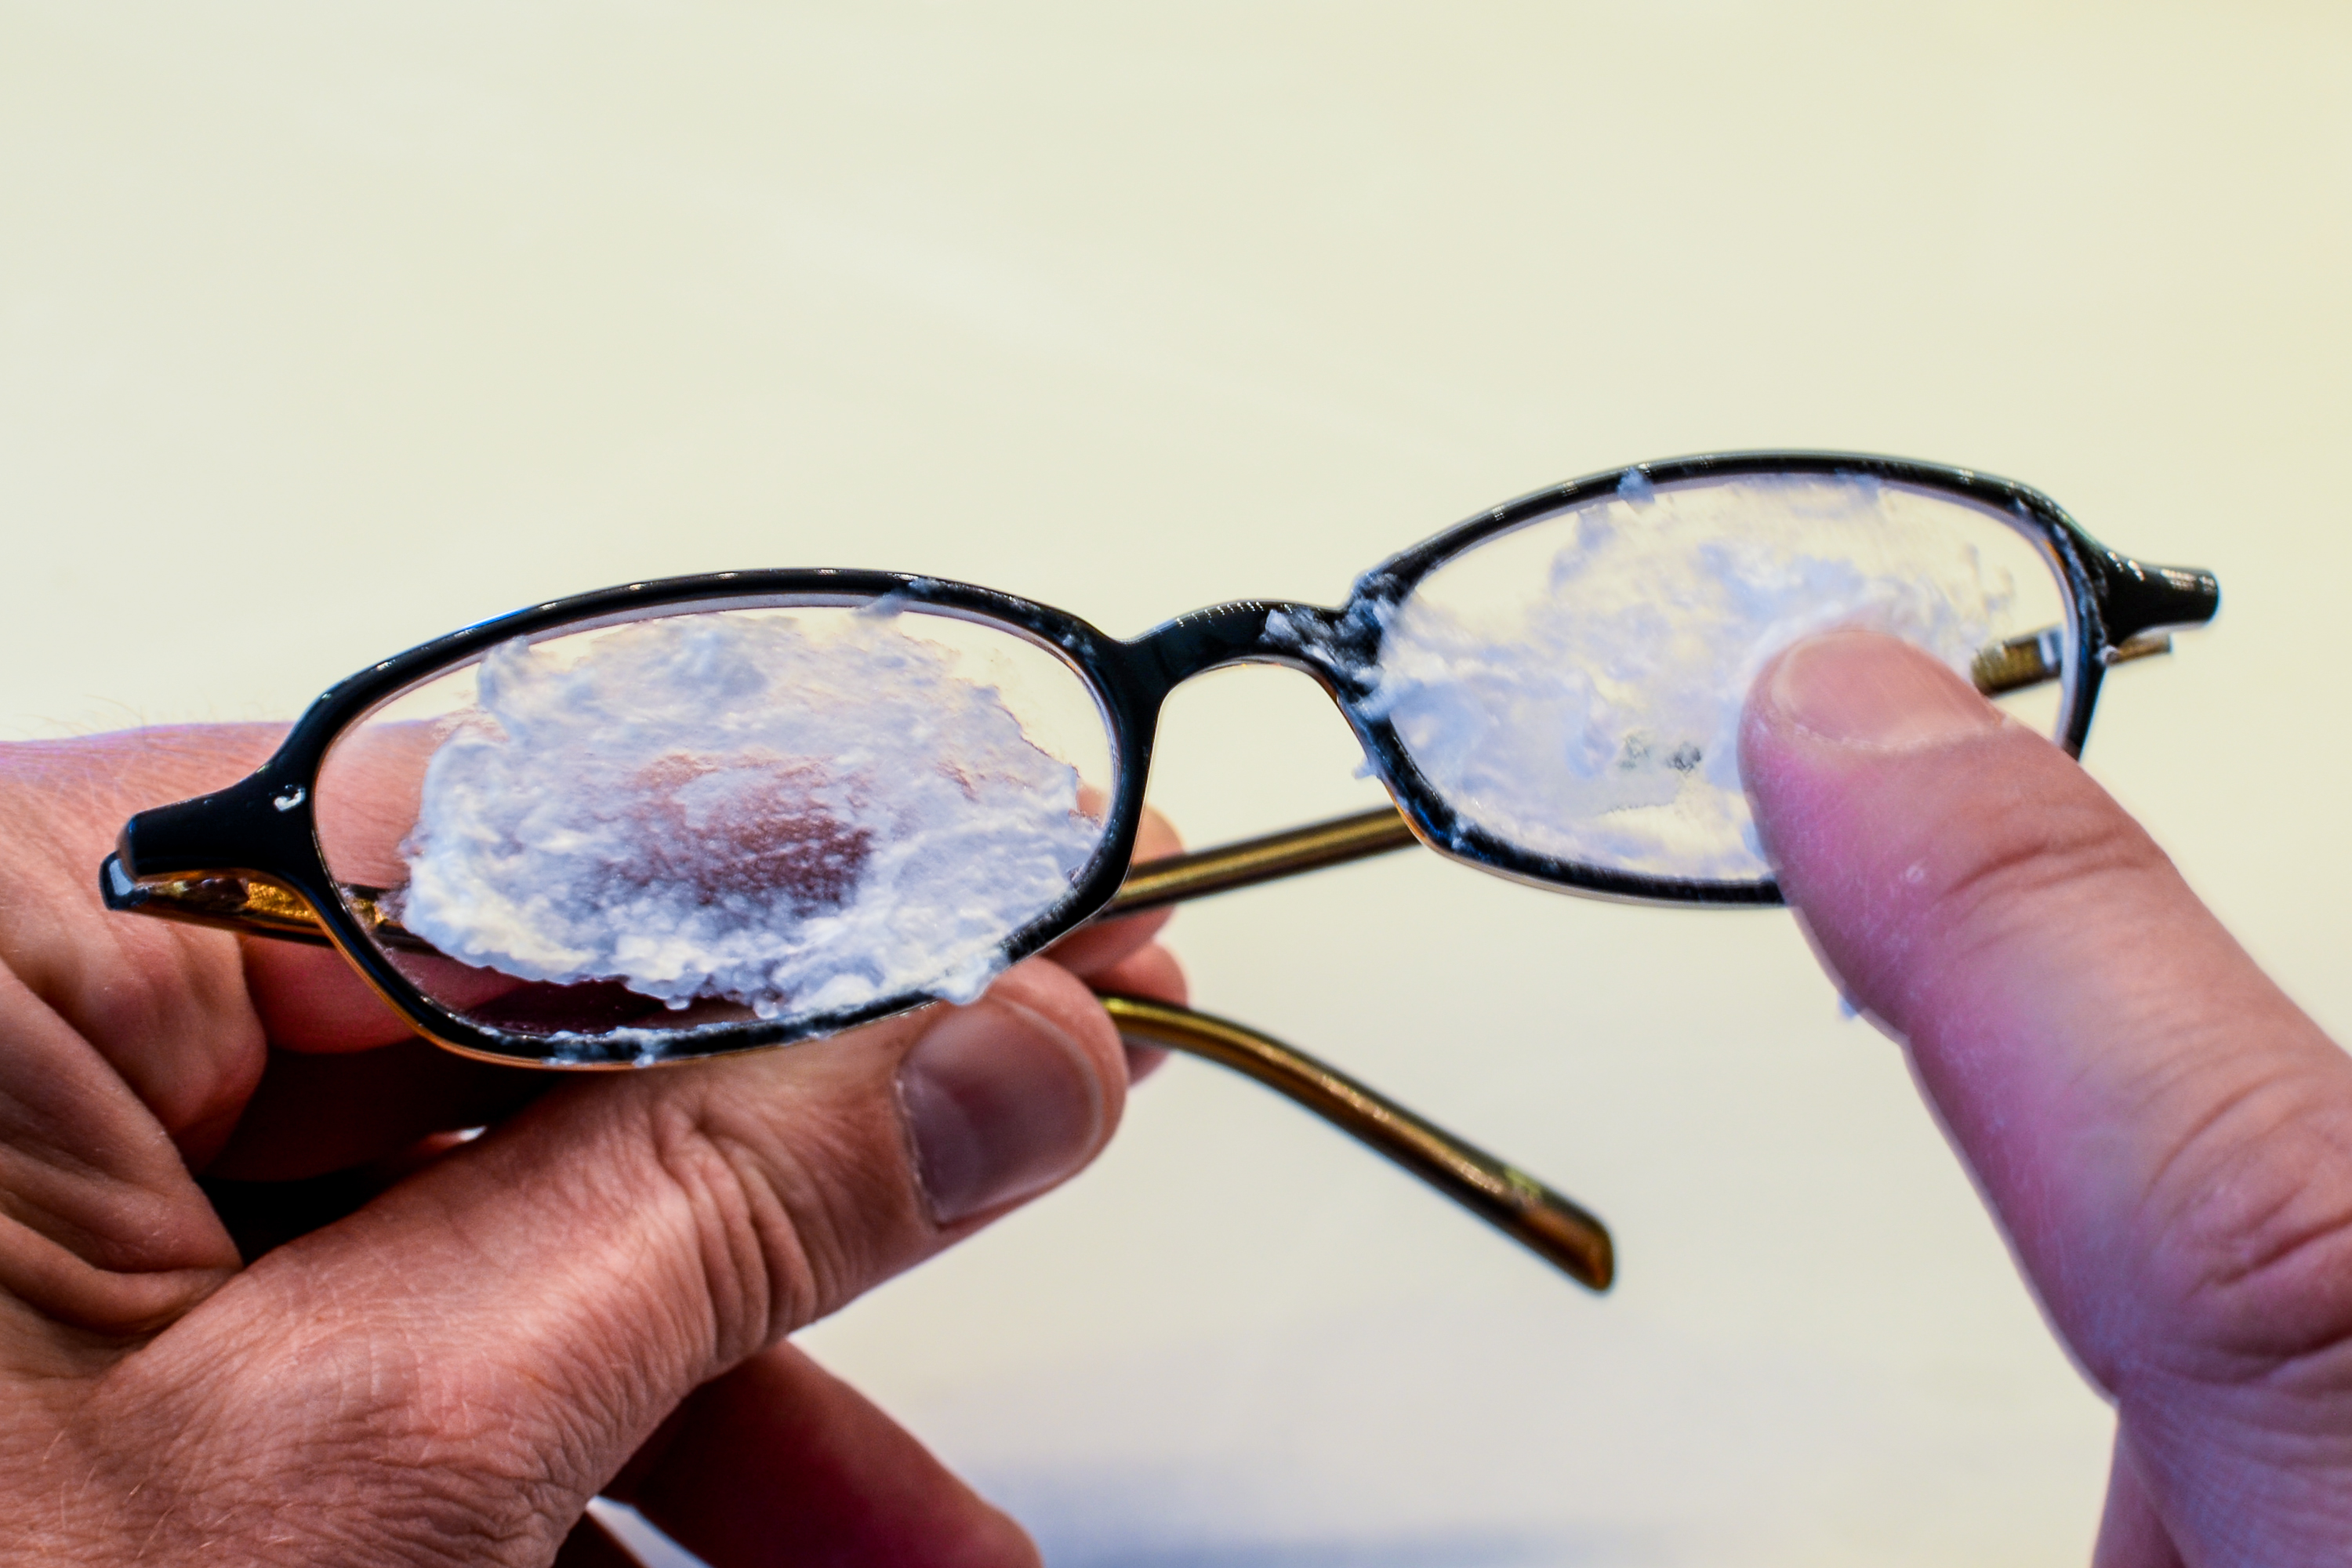 Glasses Frame Scratch Repair : How to Remove Scratches From Eyeglasses LIVESTRONG.COM